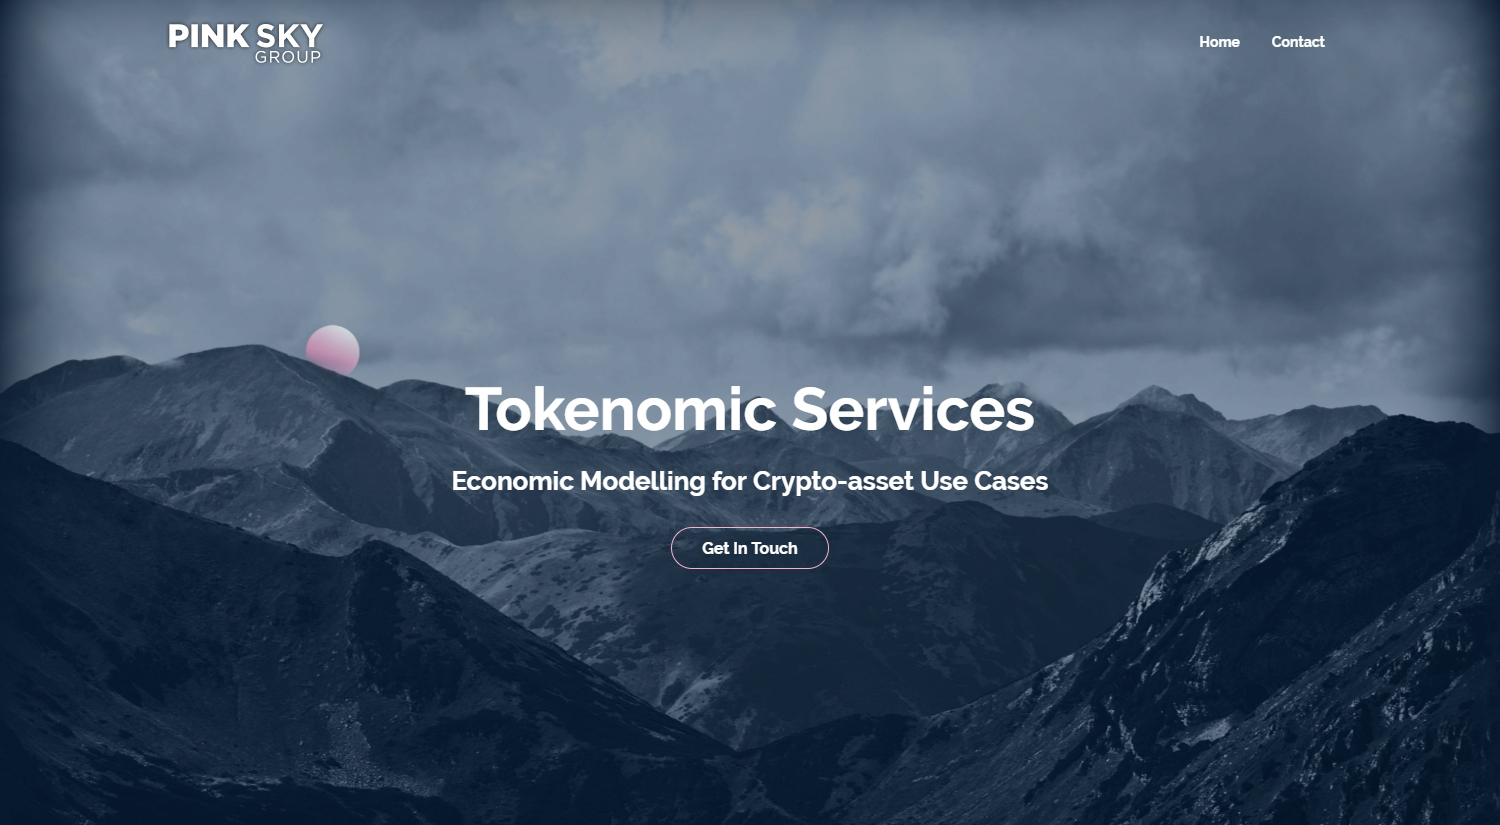 Pink Sky Group – Tokenomic Services